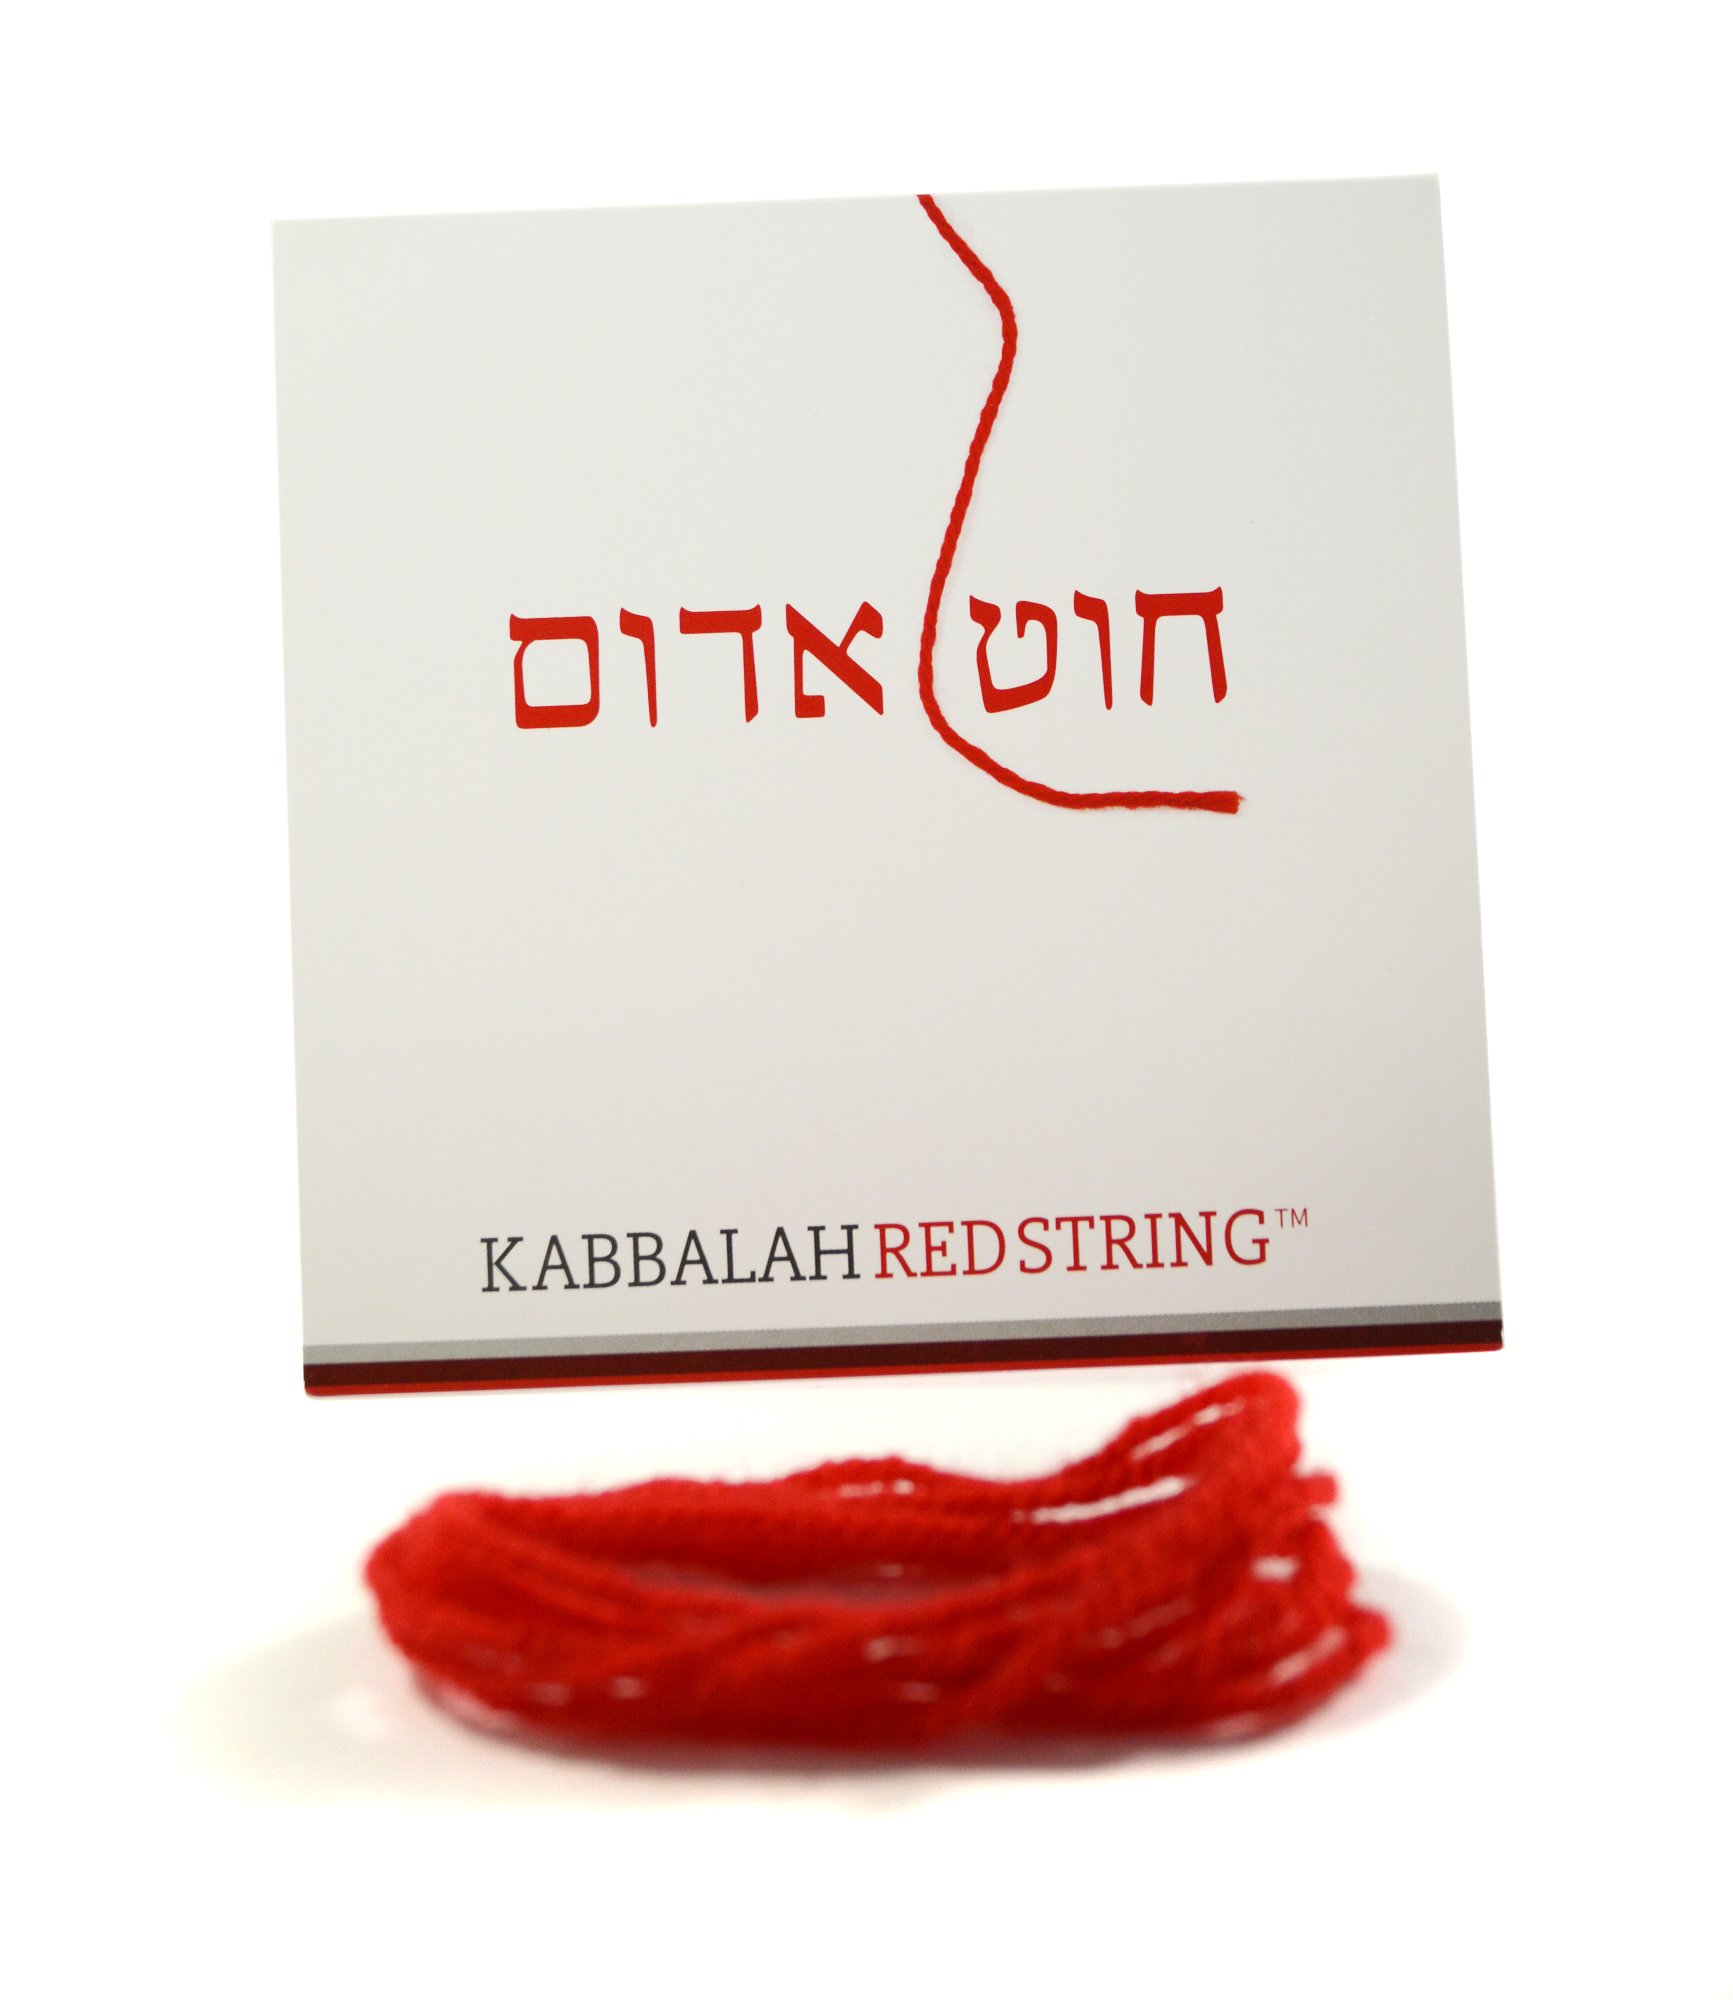 The ORIGINAL Kabbalah String from Israel RED STRING Kabbalah Bracelet Pack - 60 Inch Red String for up to SEVEN Evil Eye Protection Bracelets - Prayer, Blessing & Instructions Included!